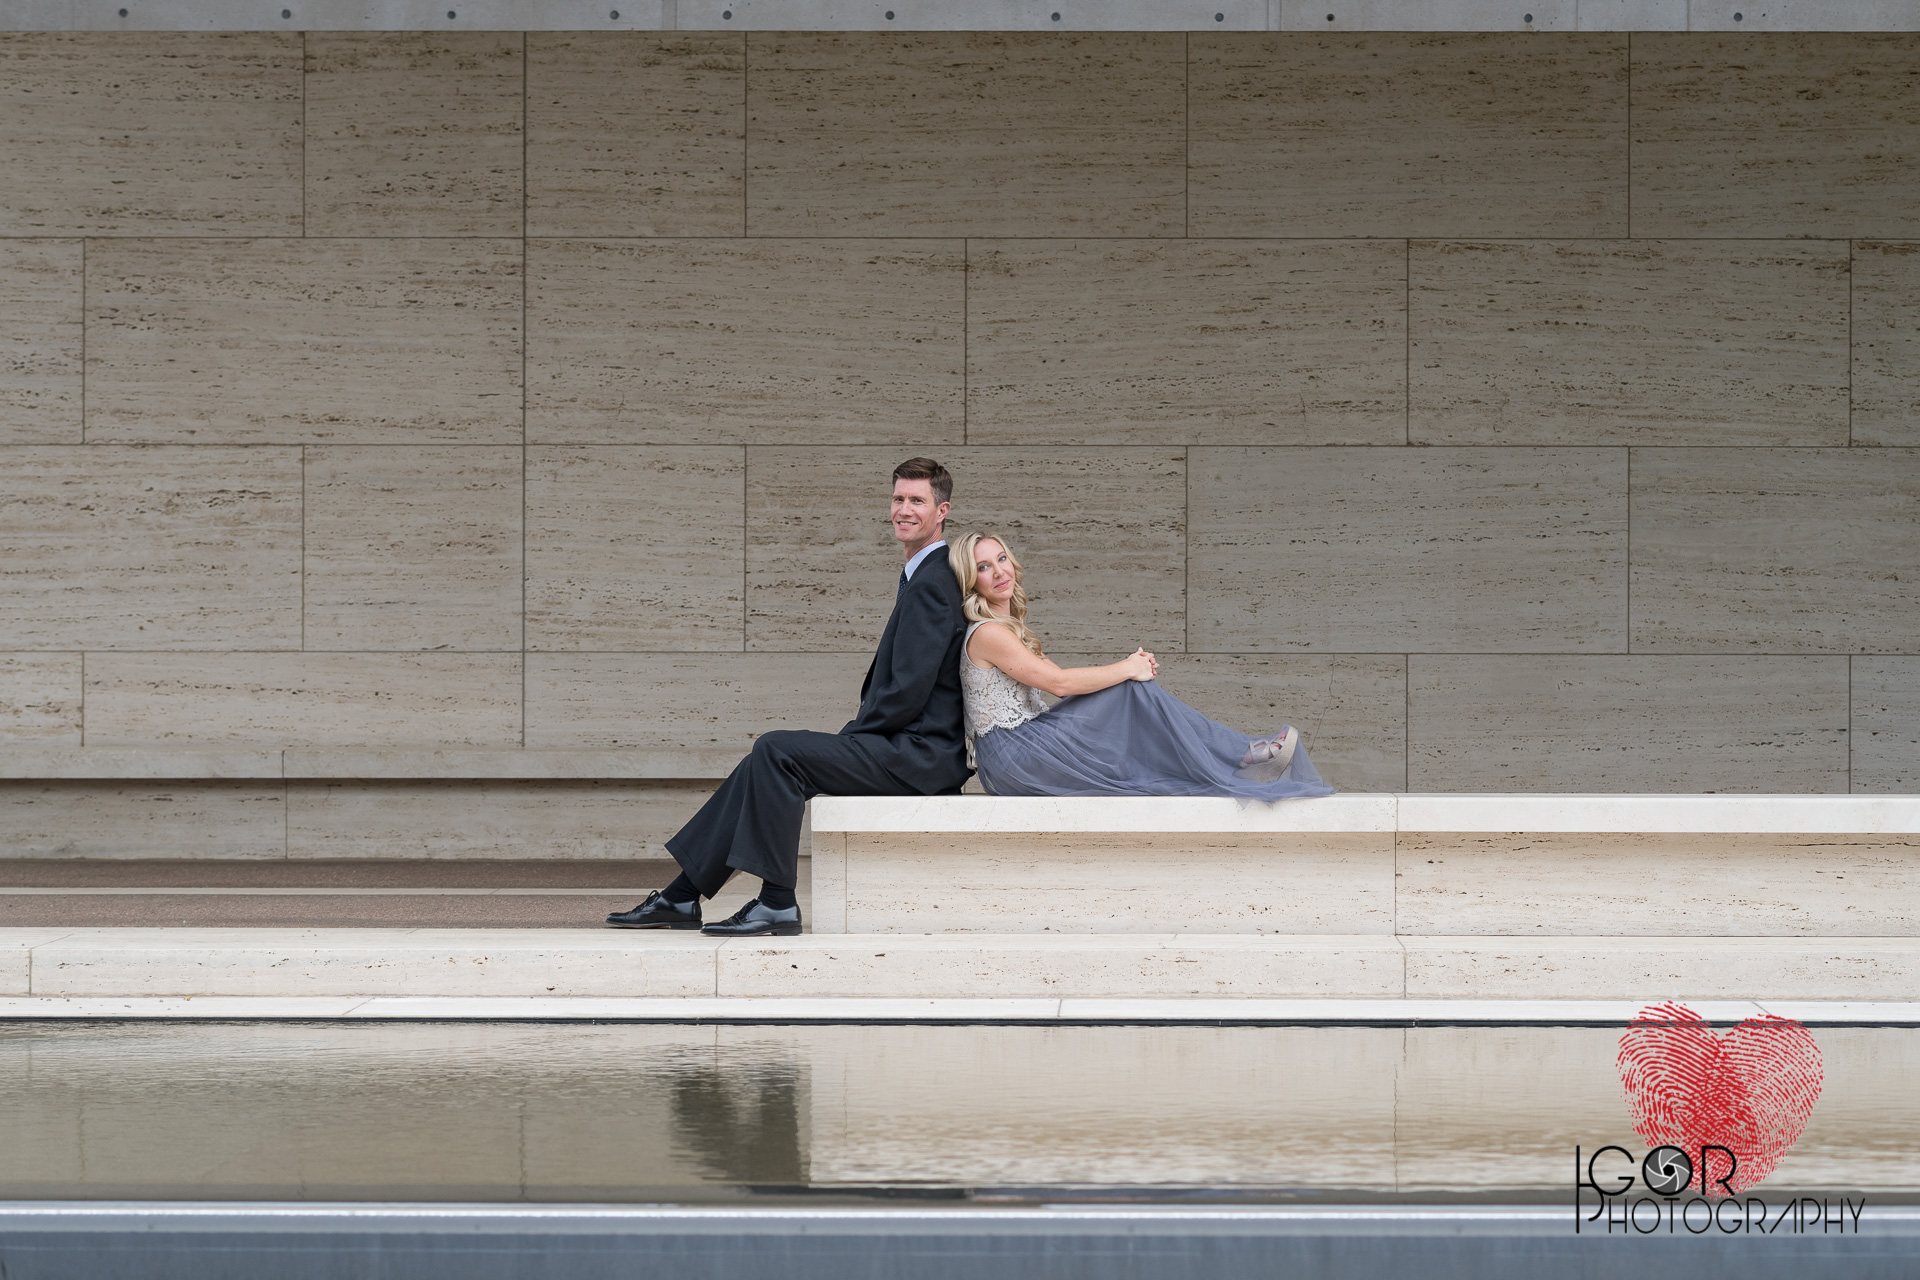 Kimbell Art Museum photo session